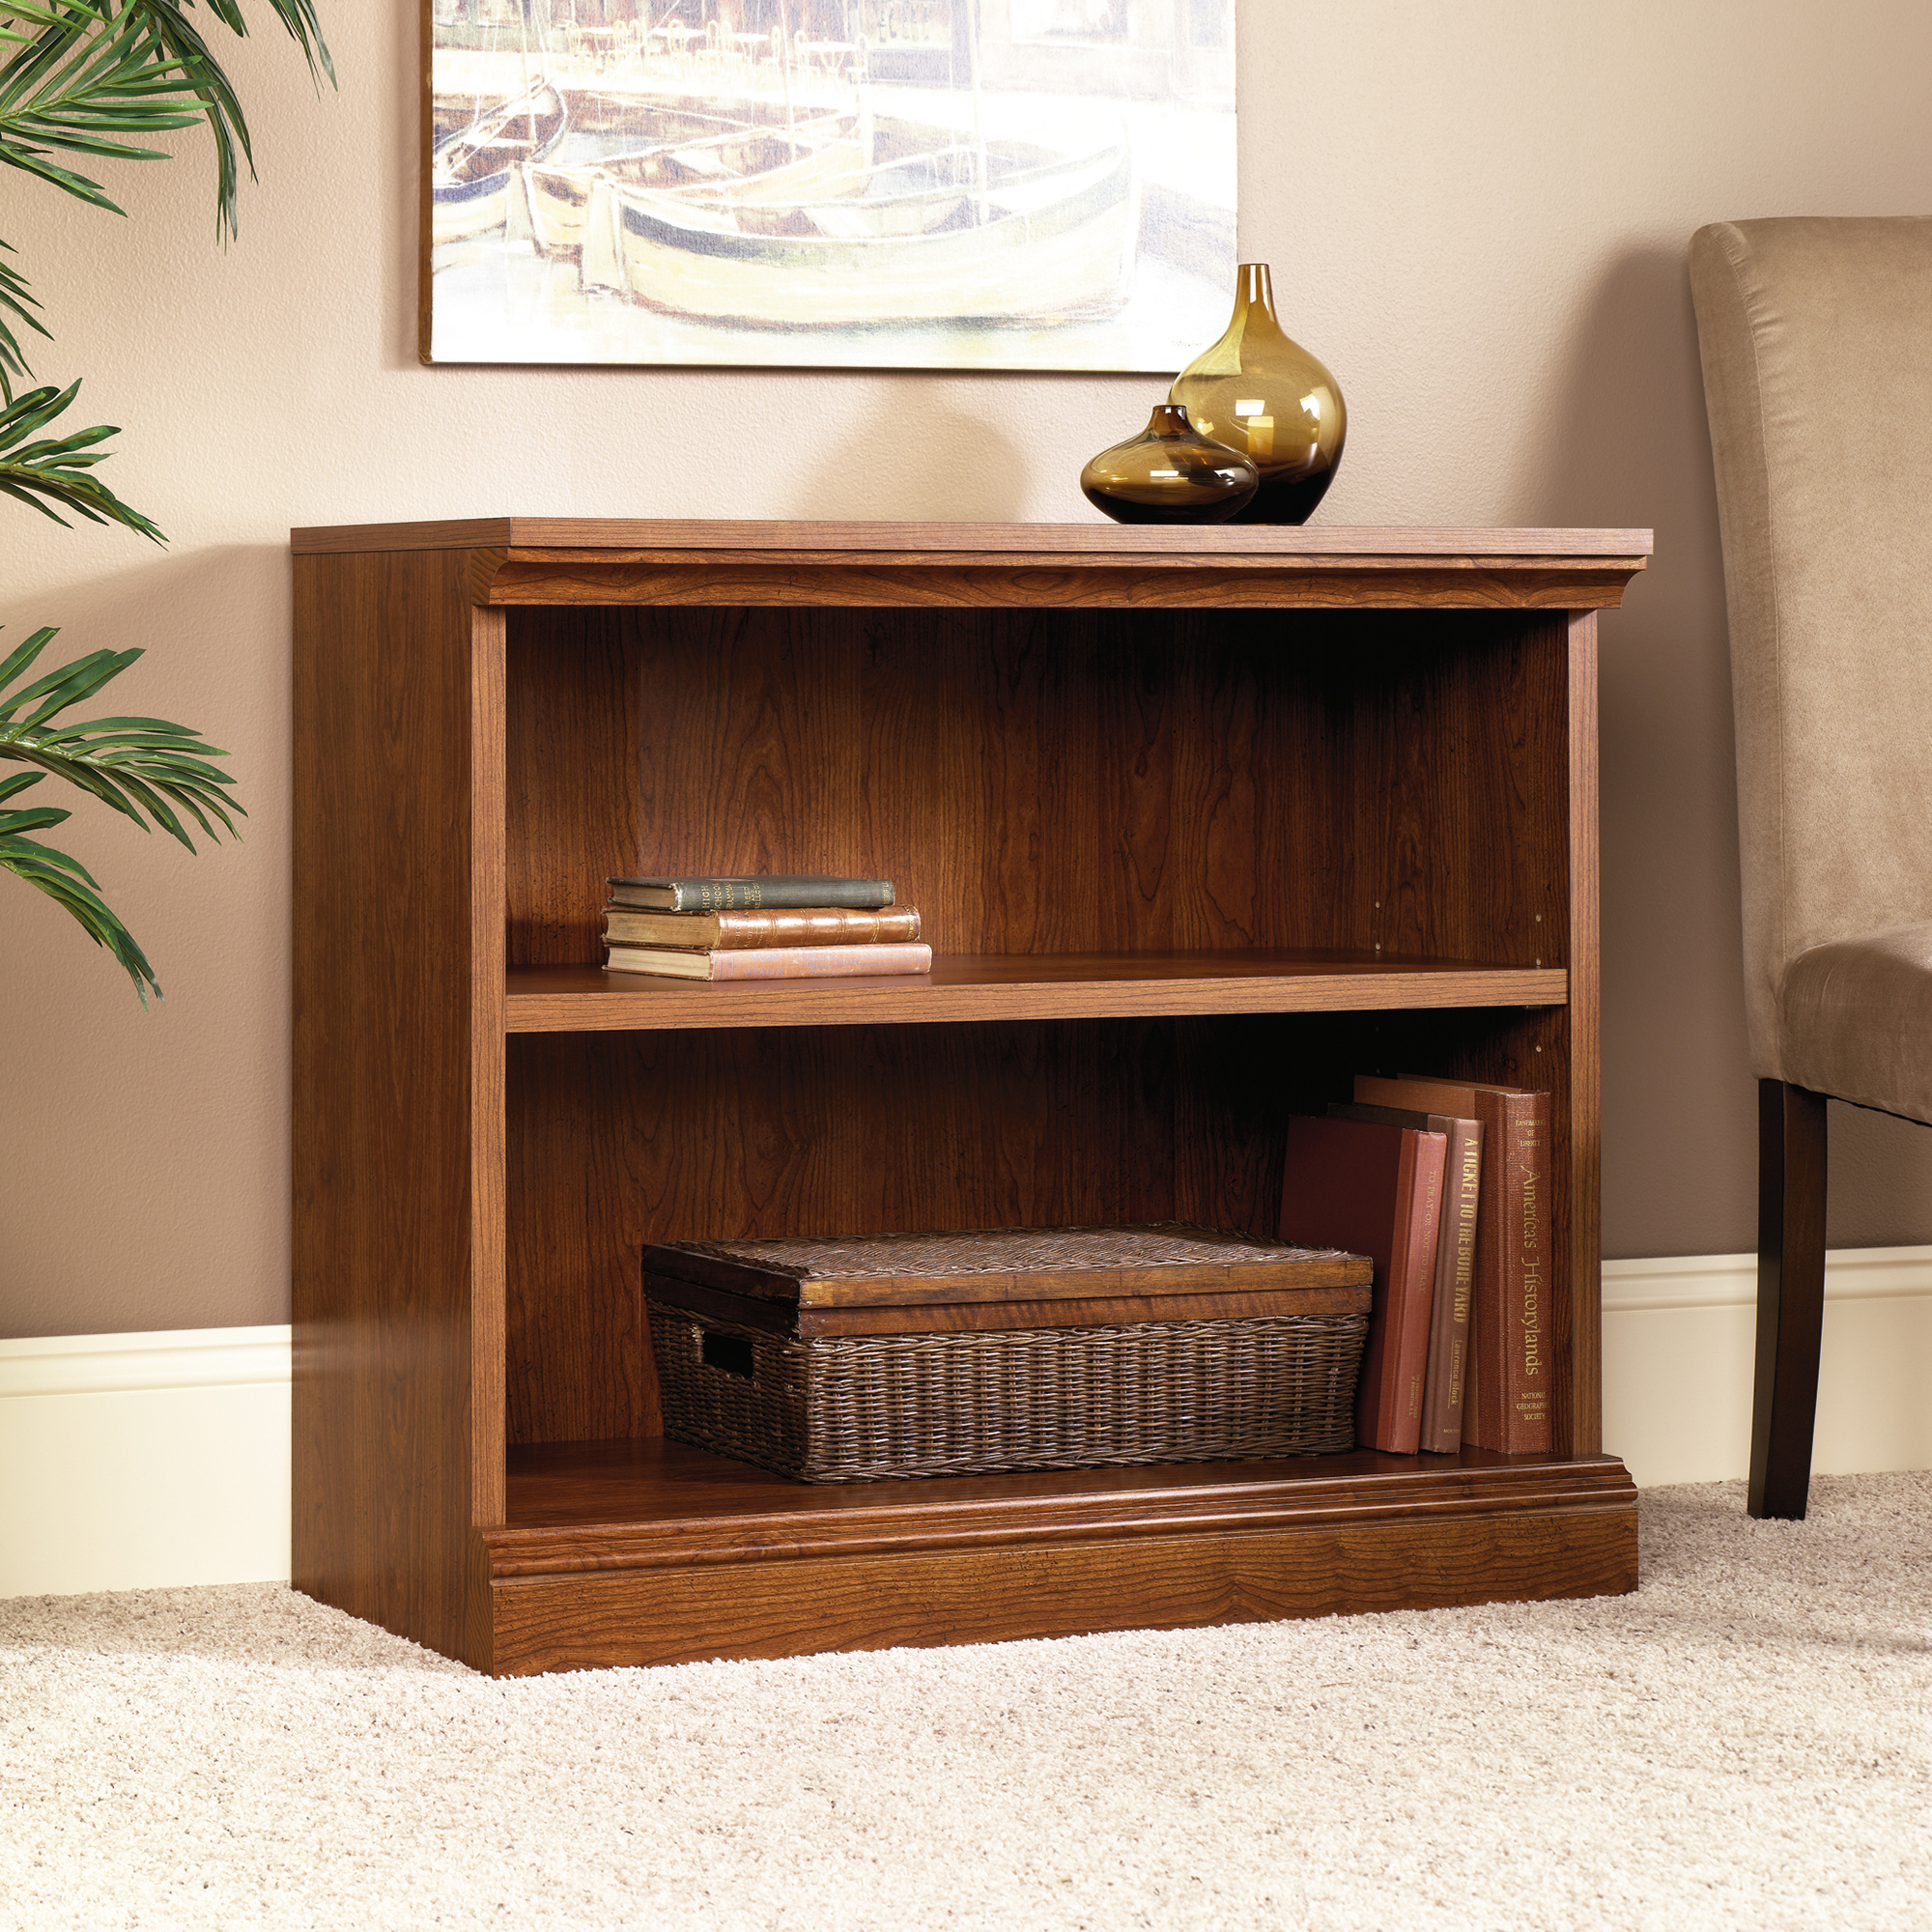 Sauder Bookcase: Perfect For Office And Home Aswell